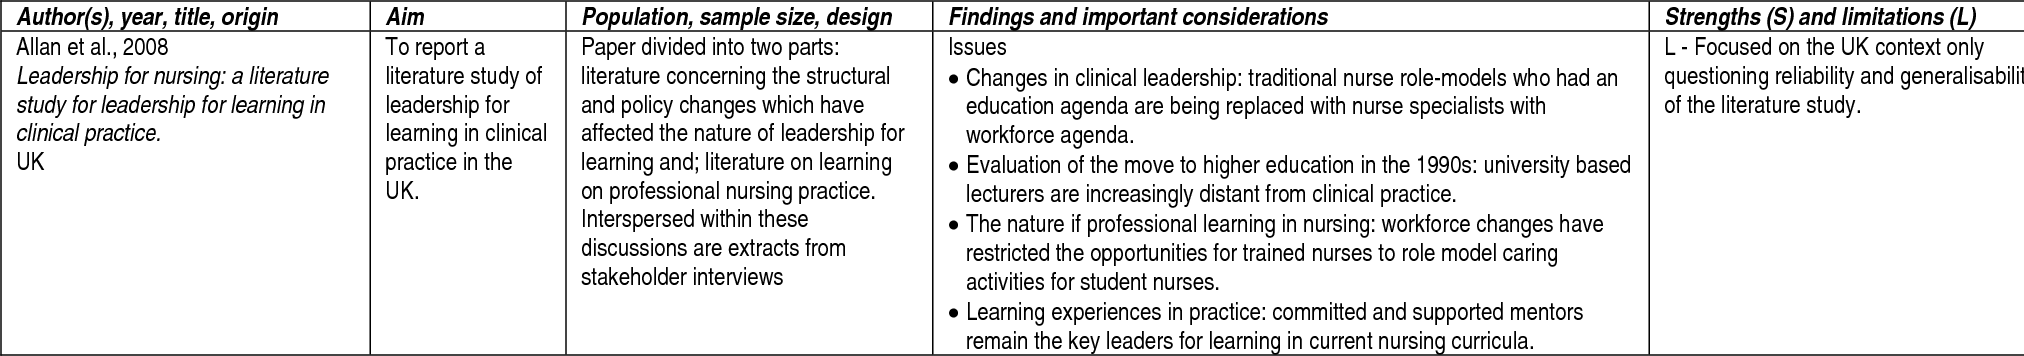 Characteristics of leadership that influence clinical